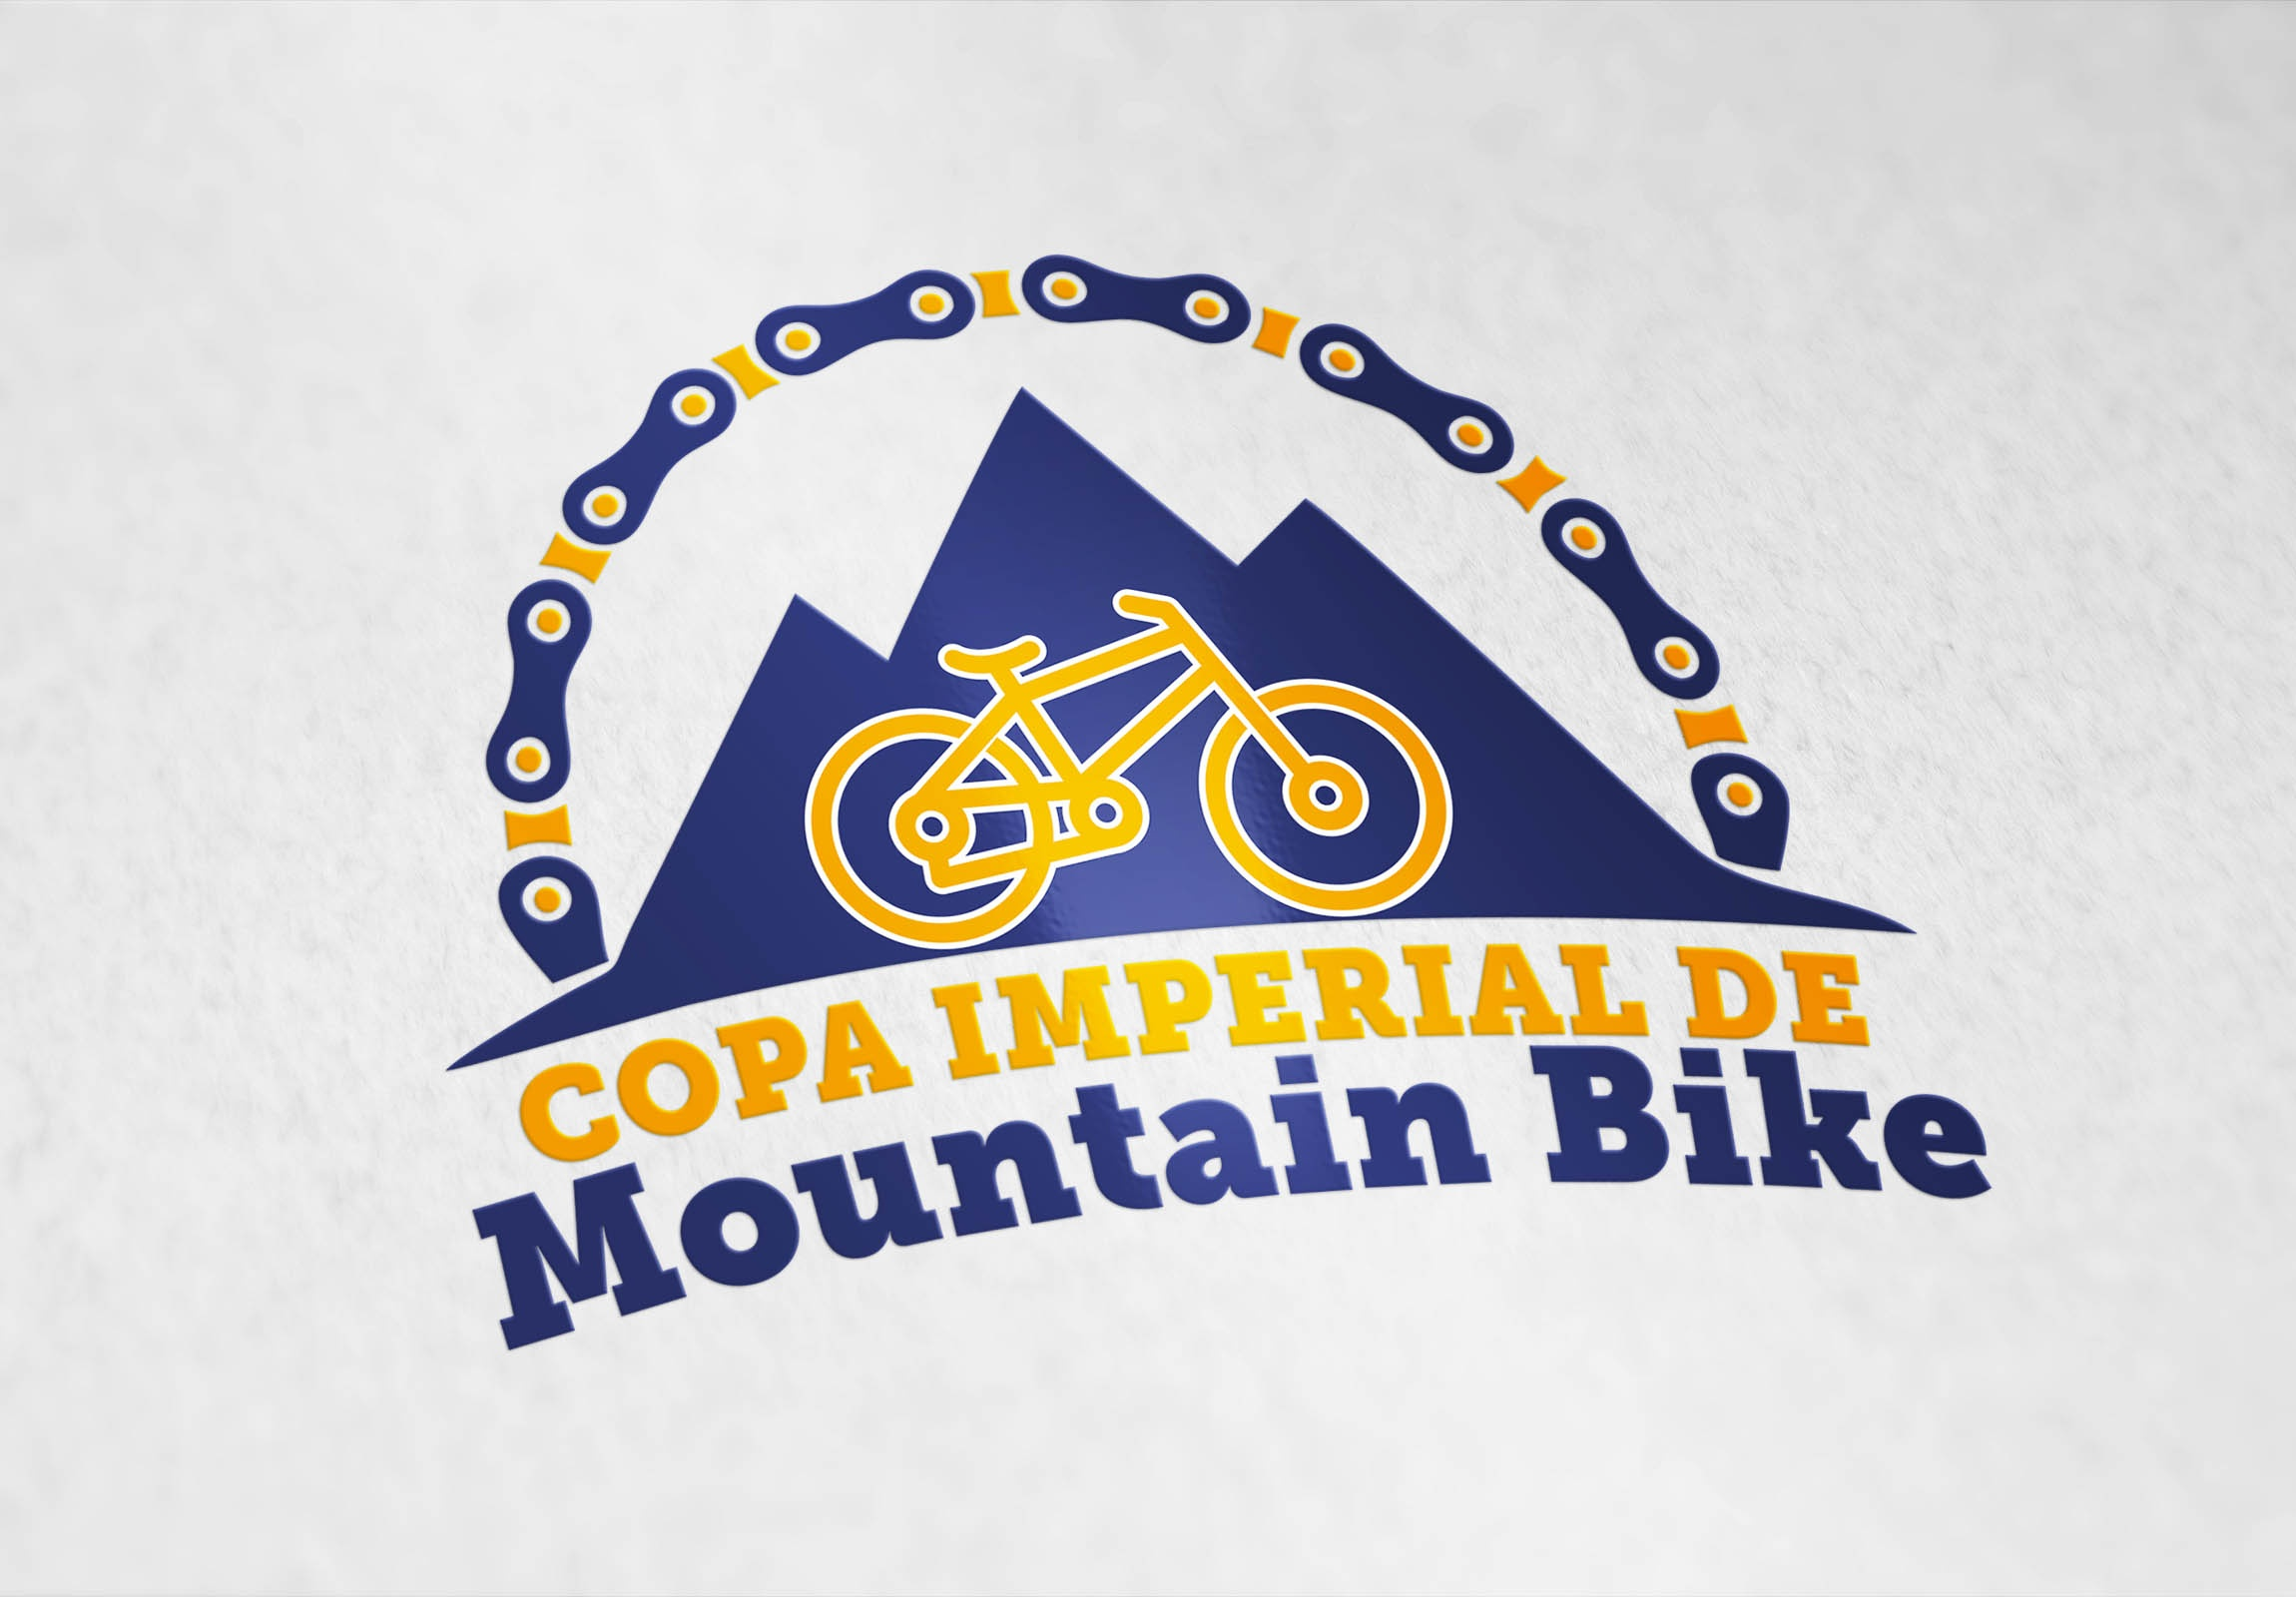 Copa Imperial de Mountain Bike